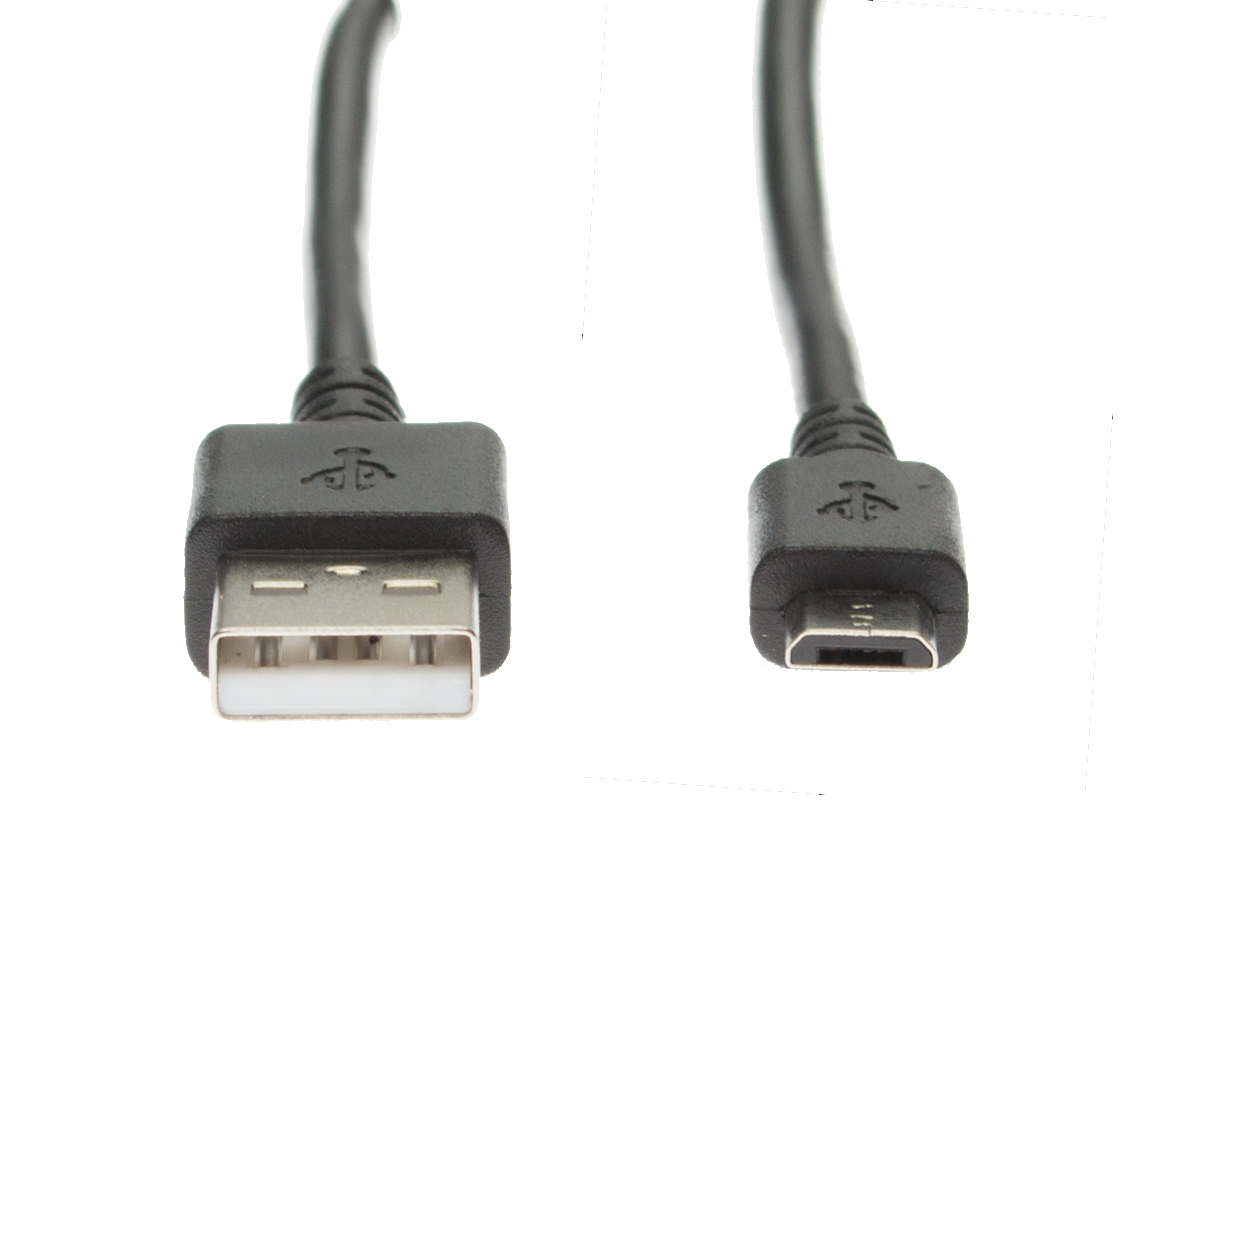 2m-USB-Black-Charger-Power-Cable-for-D-Link-EyeOn-Camera-DCS-825L-Baby-Monitor miniatuur 4